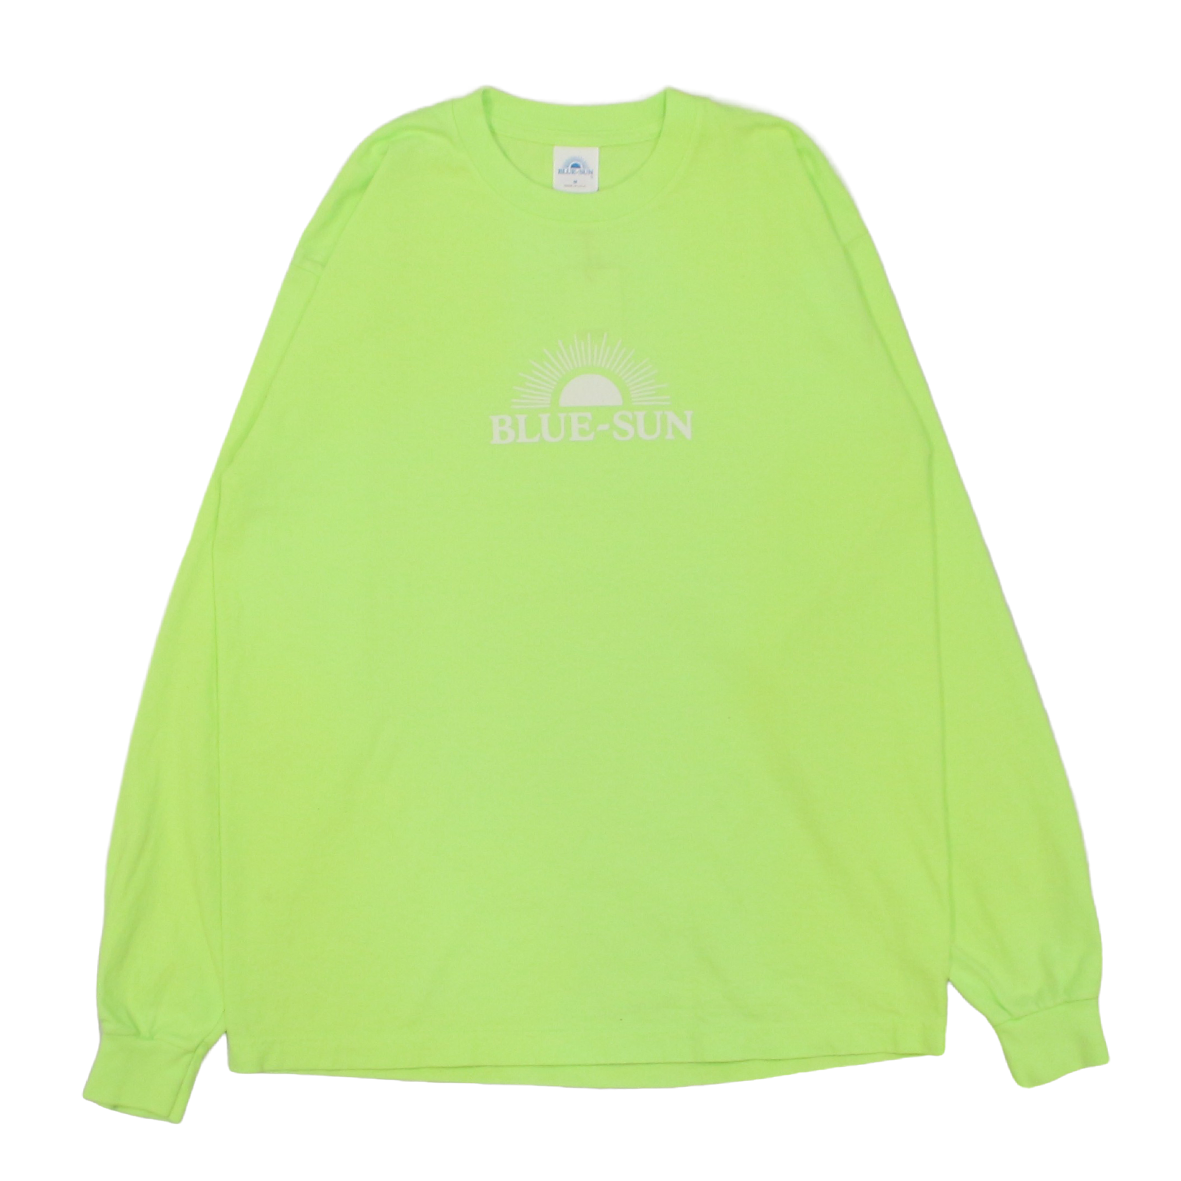 LOGO L/S TEE 【BRIGHT LIME】